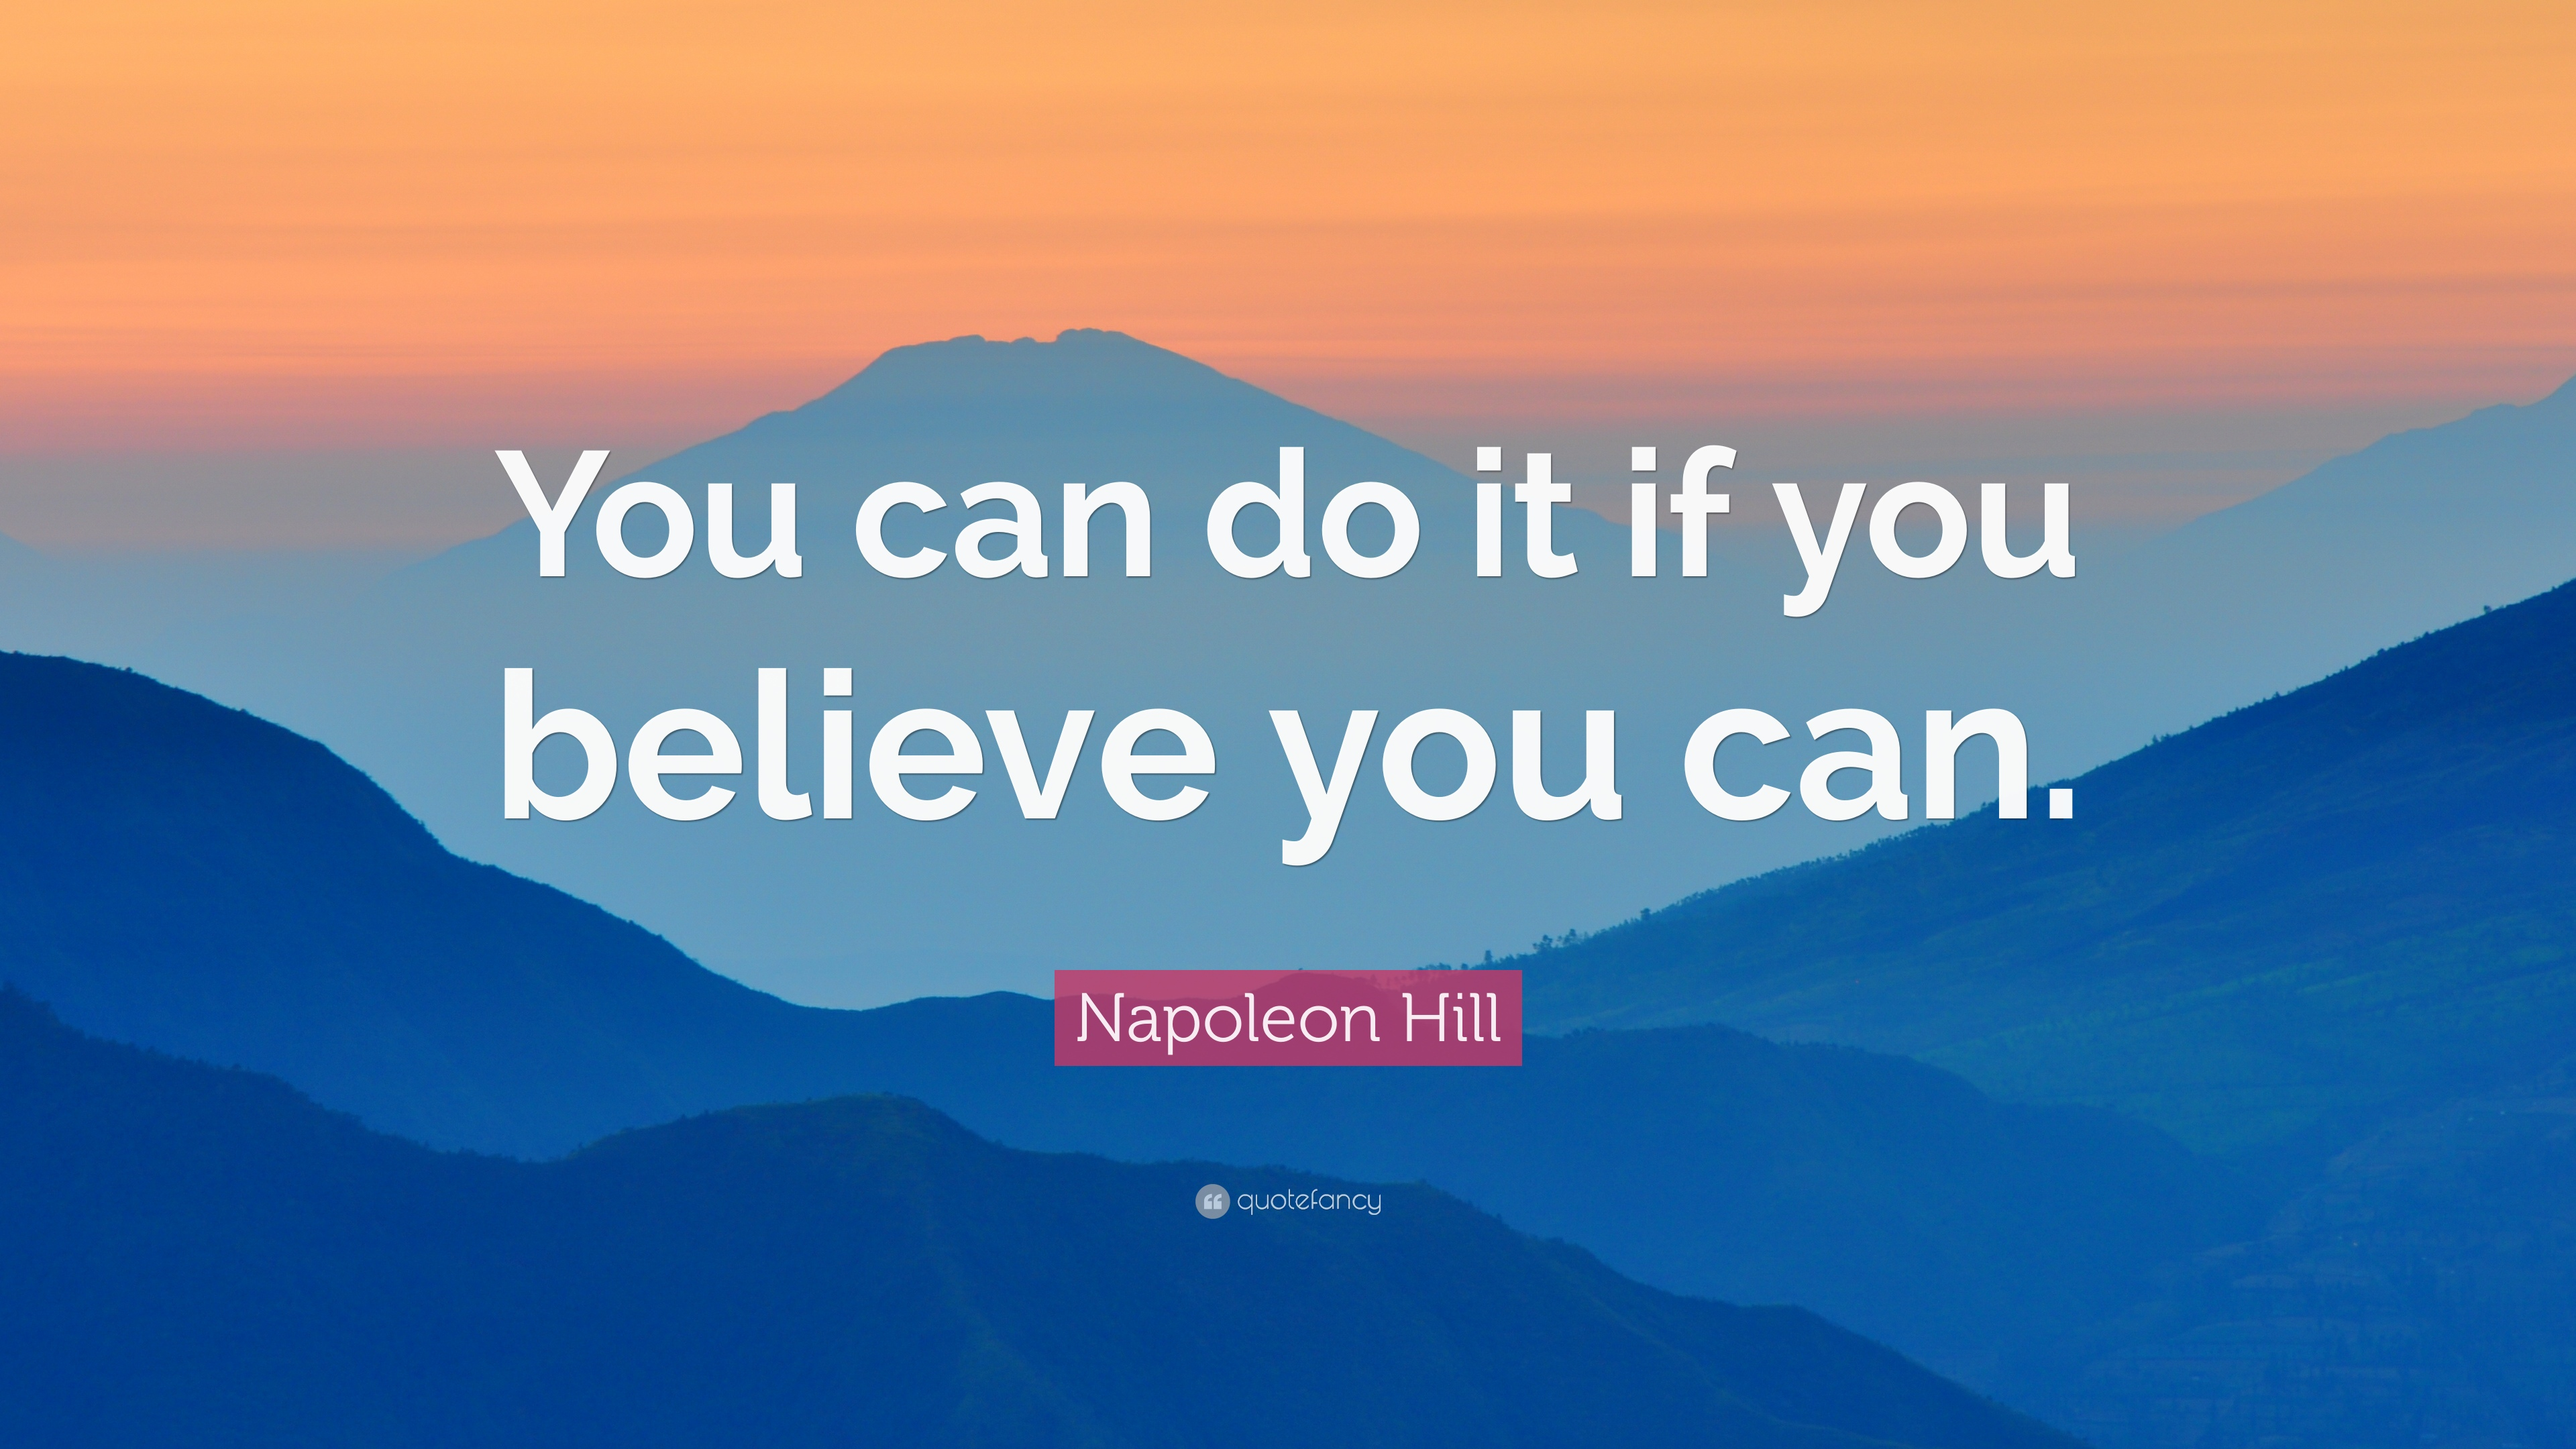 Napoleon Hill Quote: U201cYou Can Do It If You Believe You Can.u201d